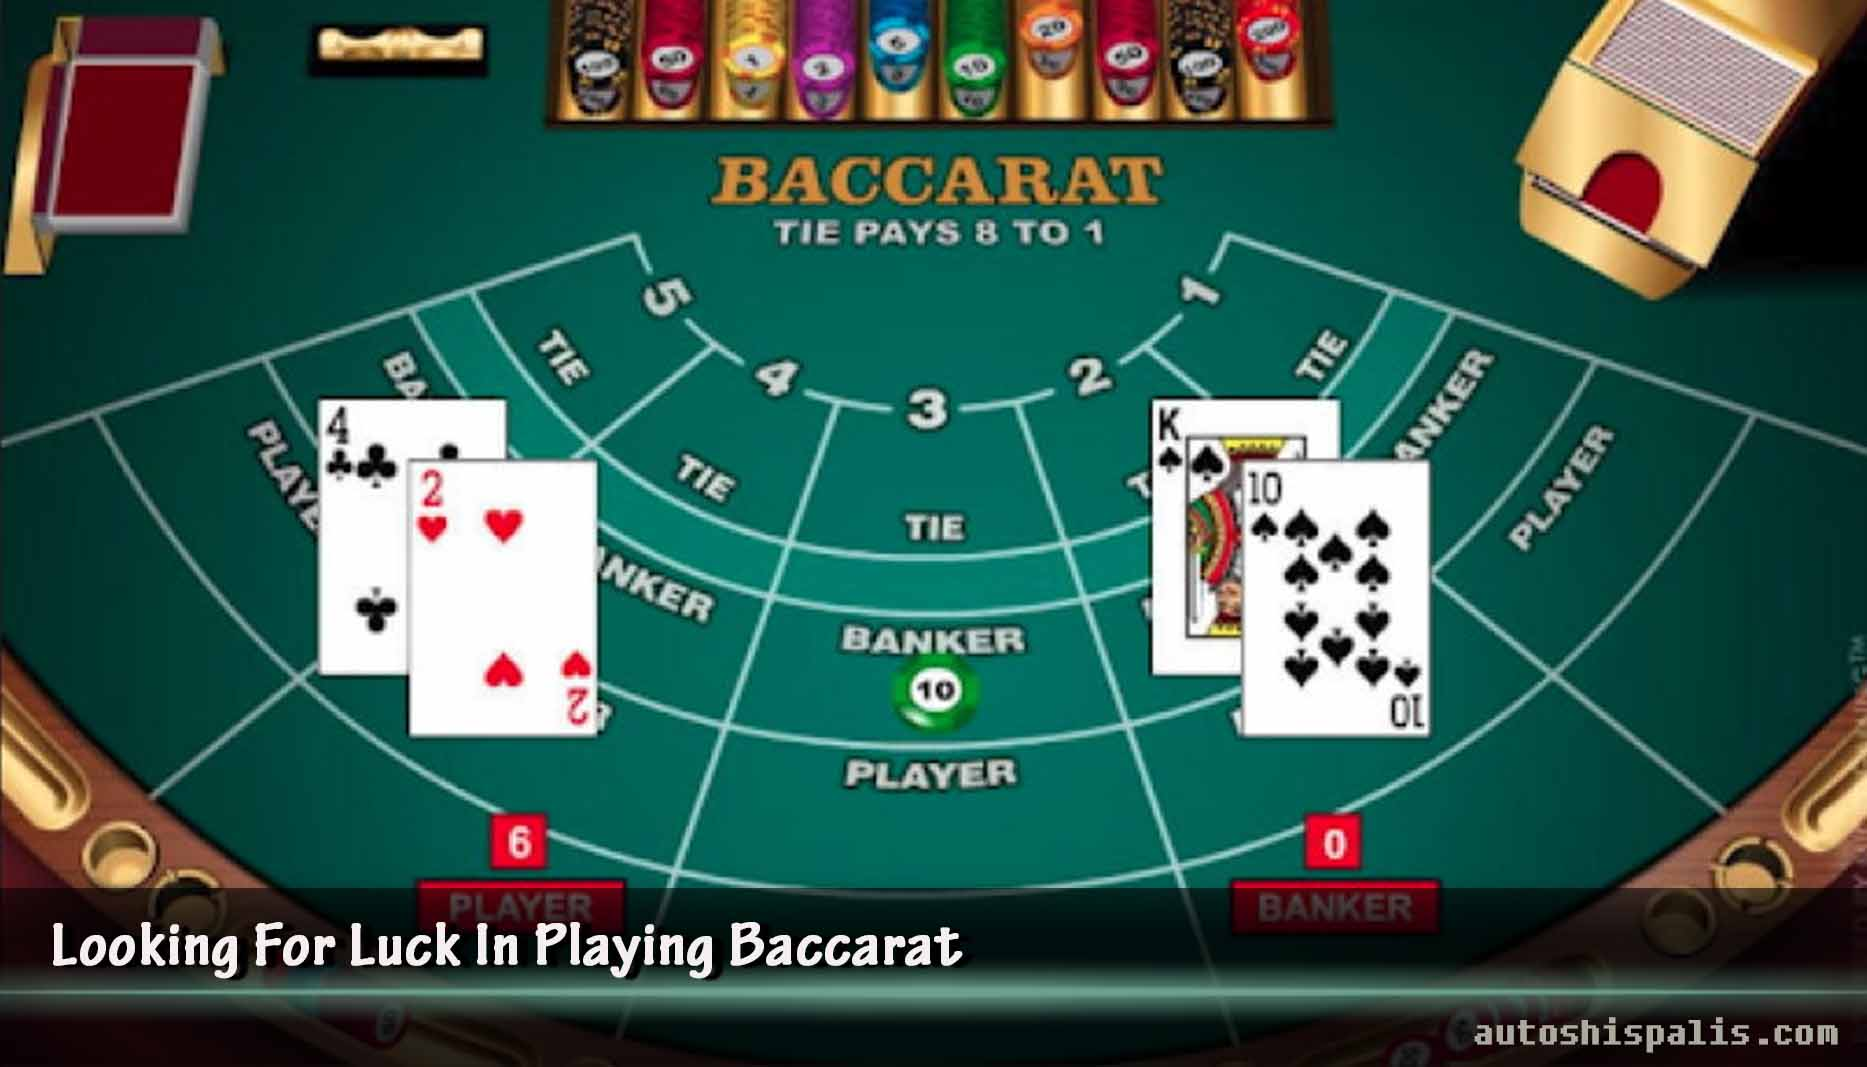 Looking For Luck In Playing Baccarat